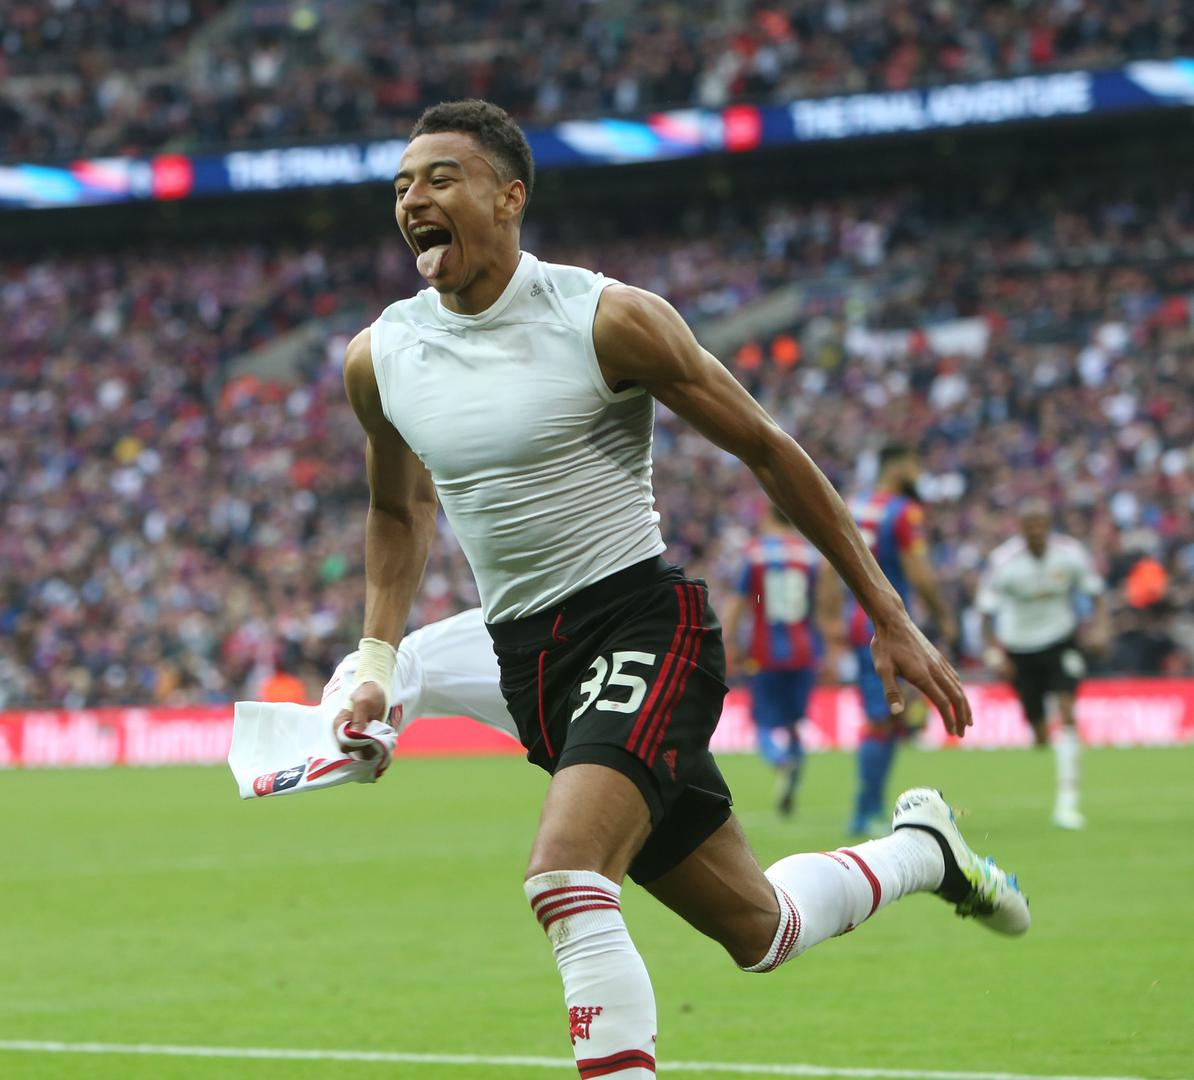 Jesse Lingard celebrates scoring the winner in the 2016 FA Cup final